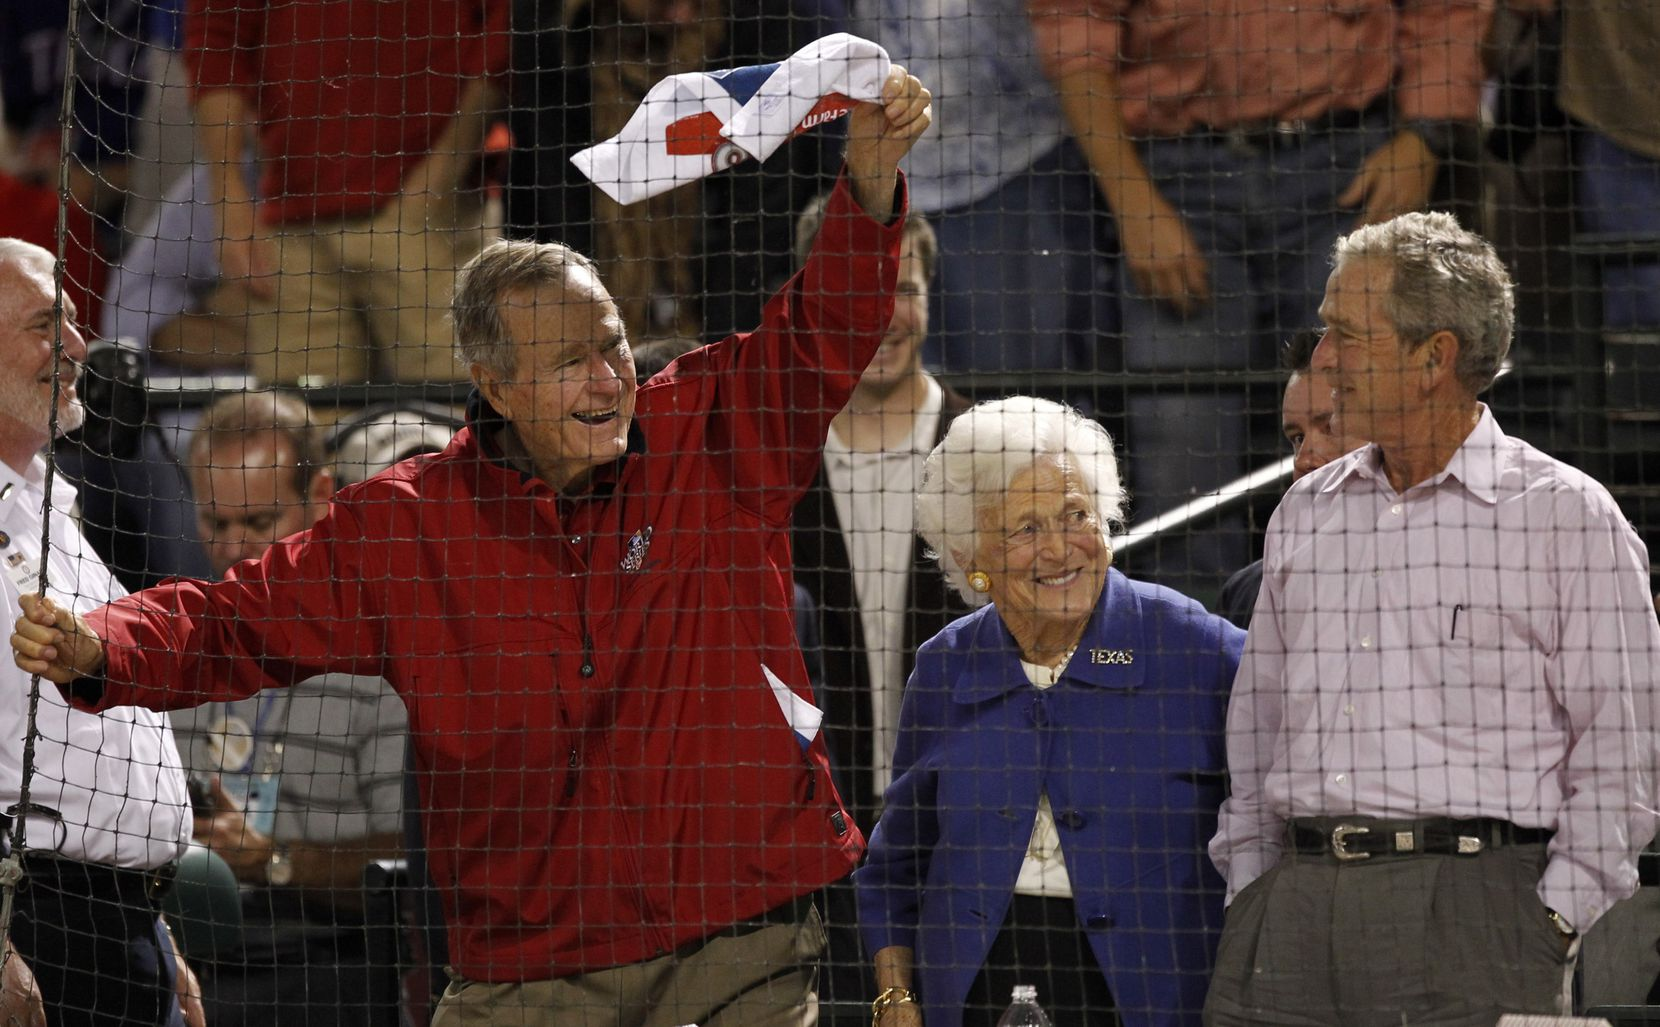 Former president George H.W. Bush waves a towel as wife Barbara and son George W. Bush look on during the World Series Game 4 between the Texas Rangers and San Francisco Giants at Rangers Ballpark in Arlington on Oct. 31, 2010.